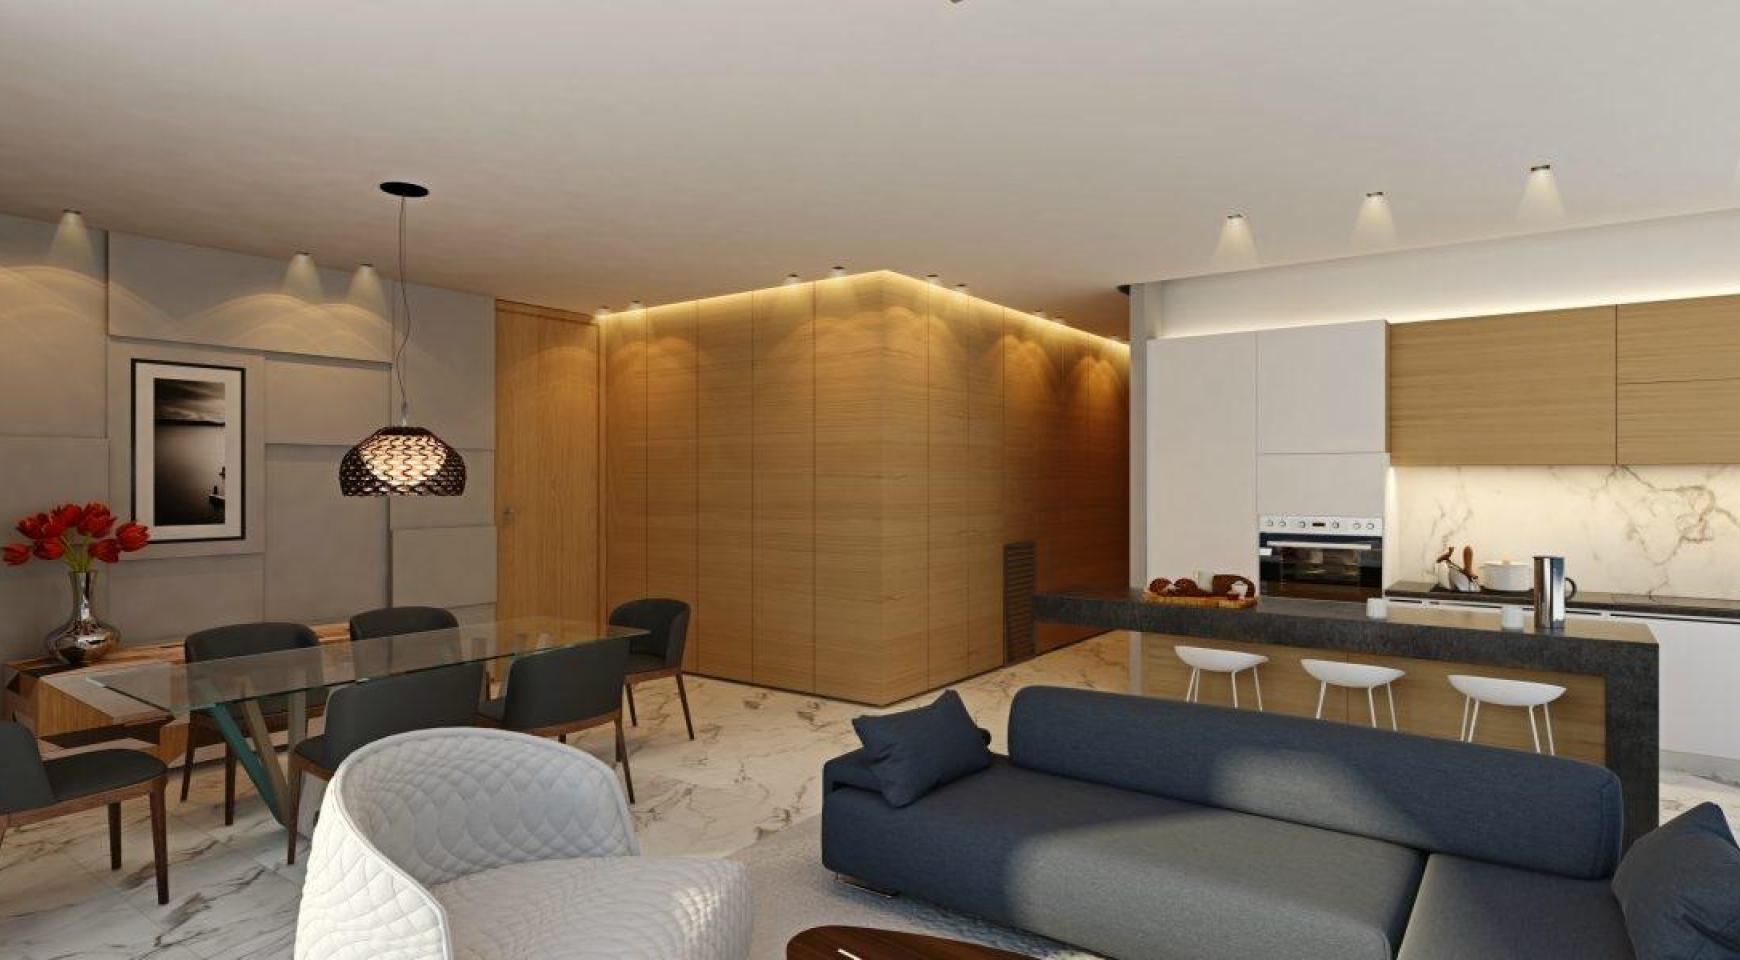 Modern 3 Bedroom Apartment in a New Unique Project by the Sea - 16